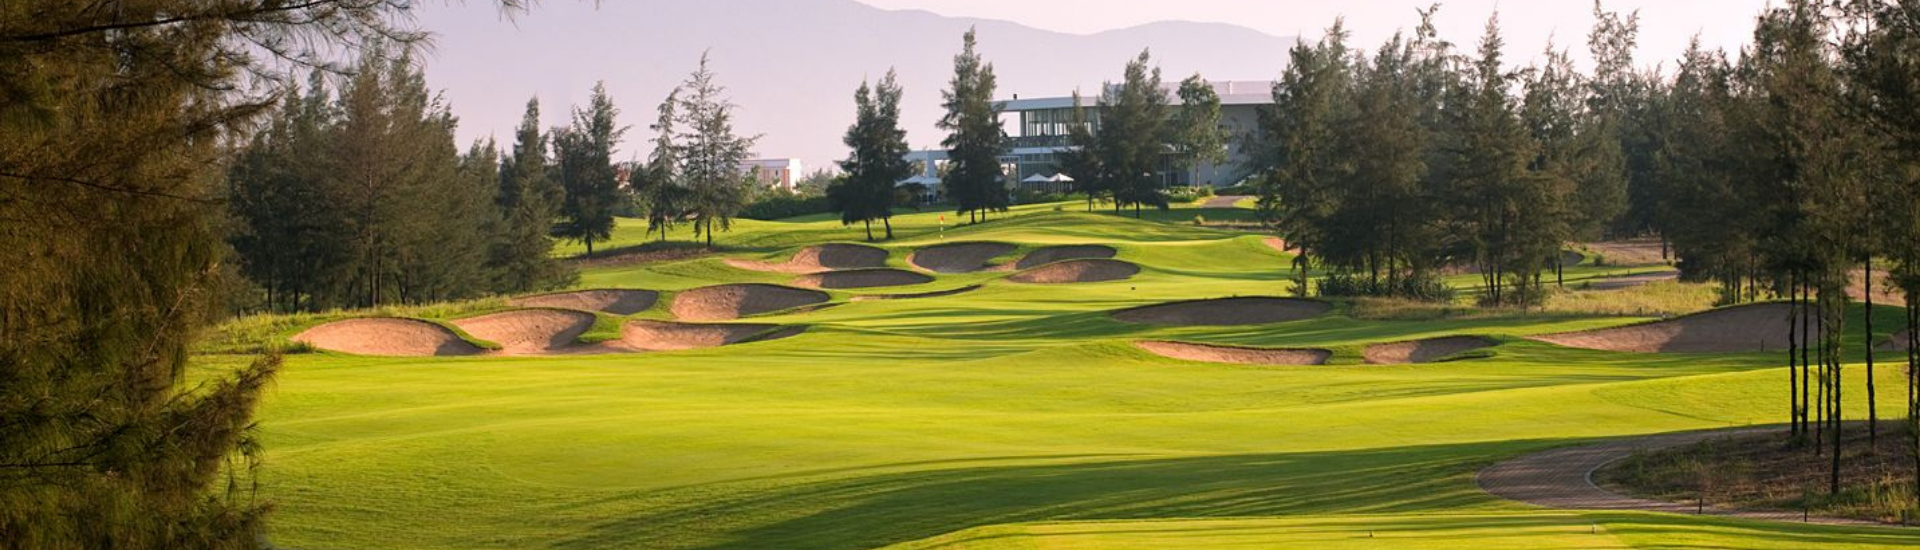 5 Reasons To Go on a Vietnam Golf Tour